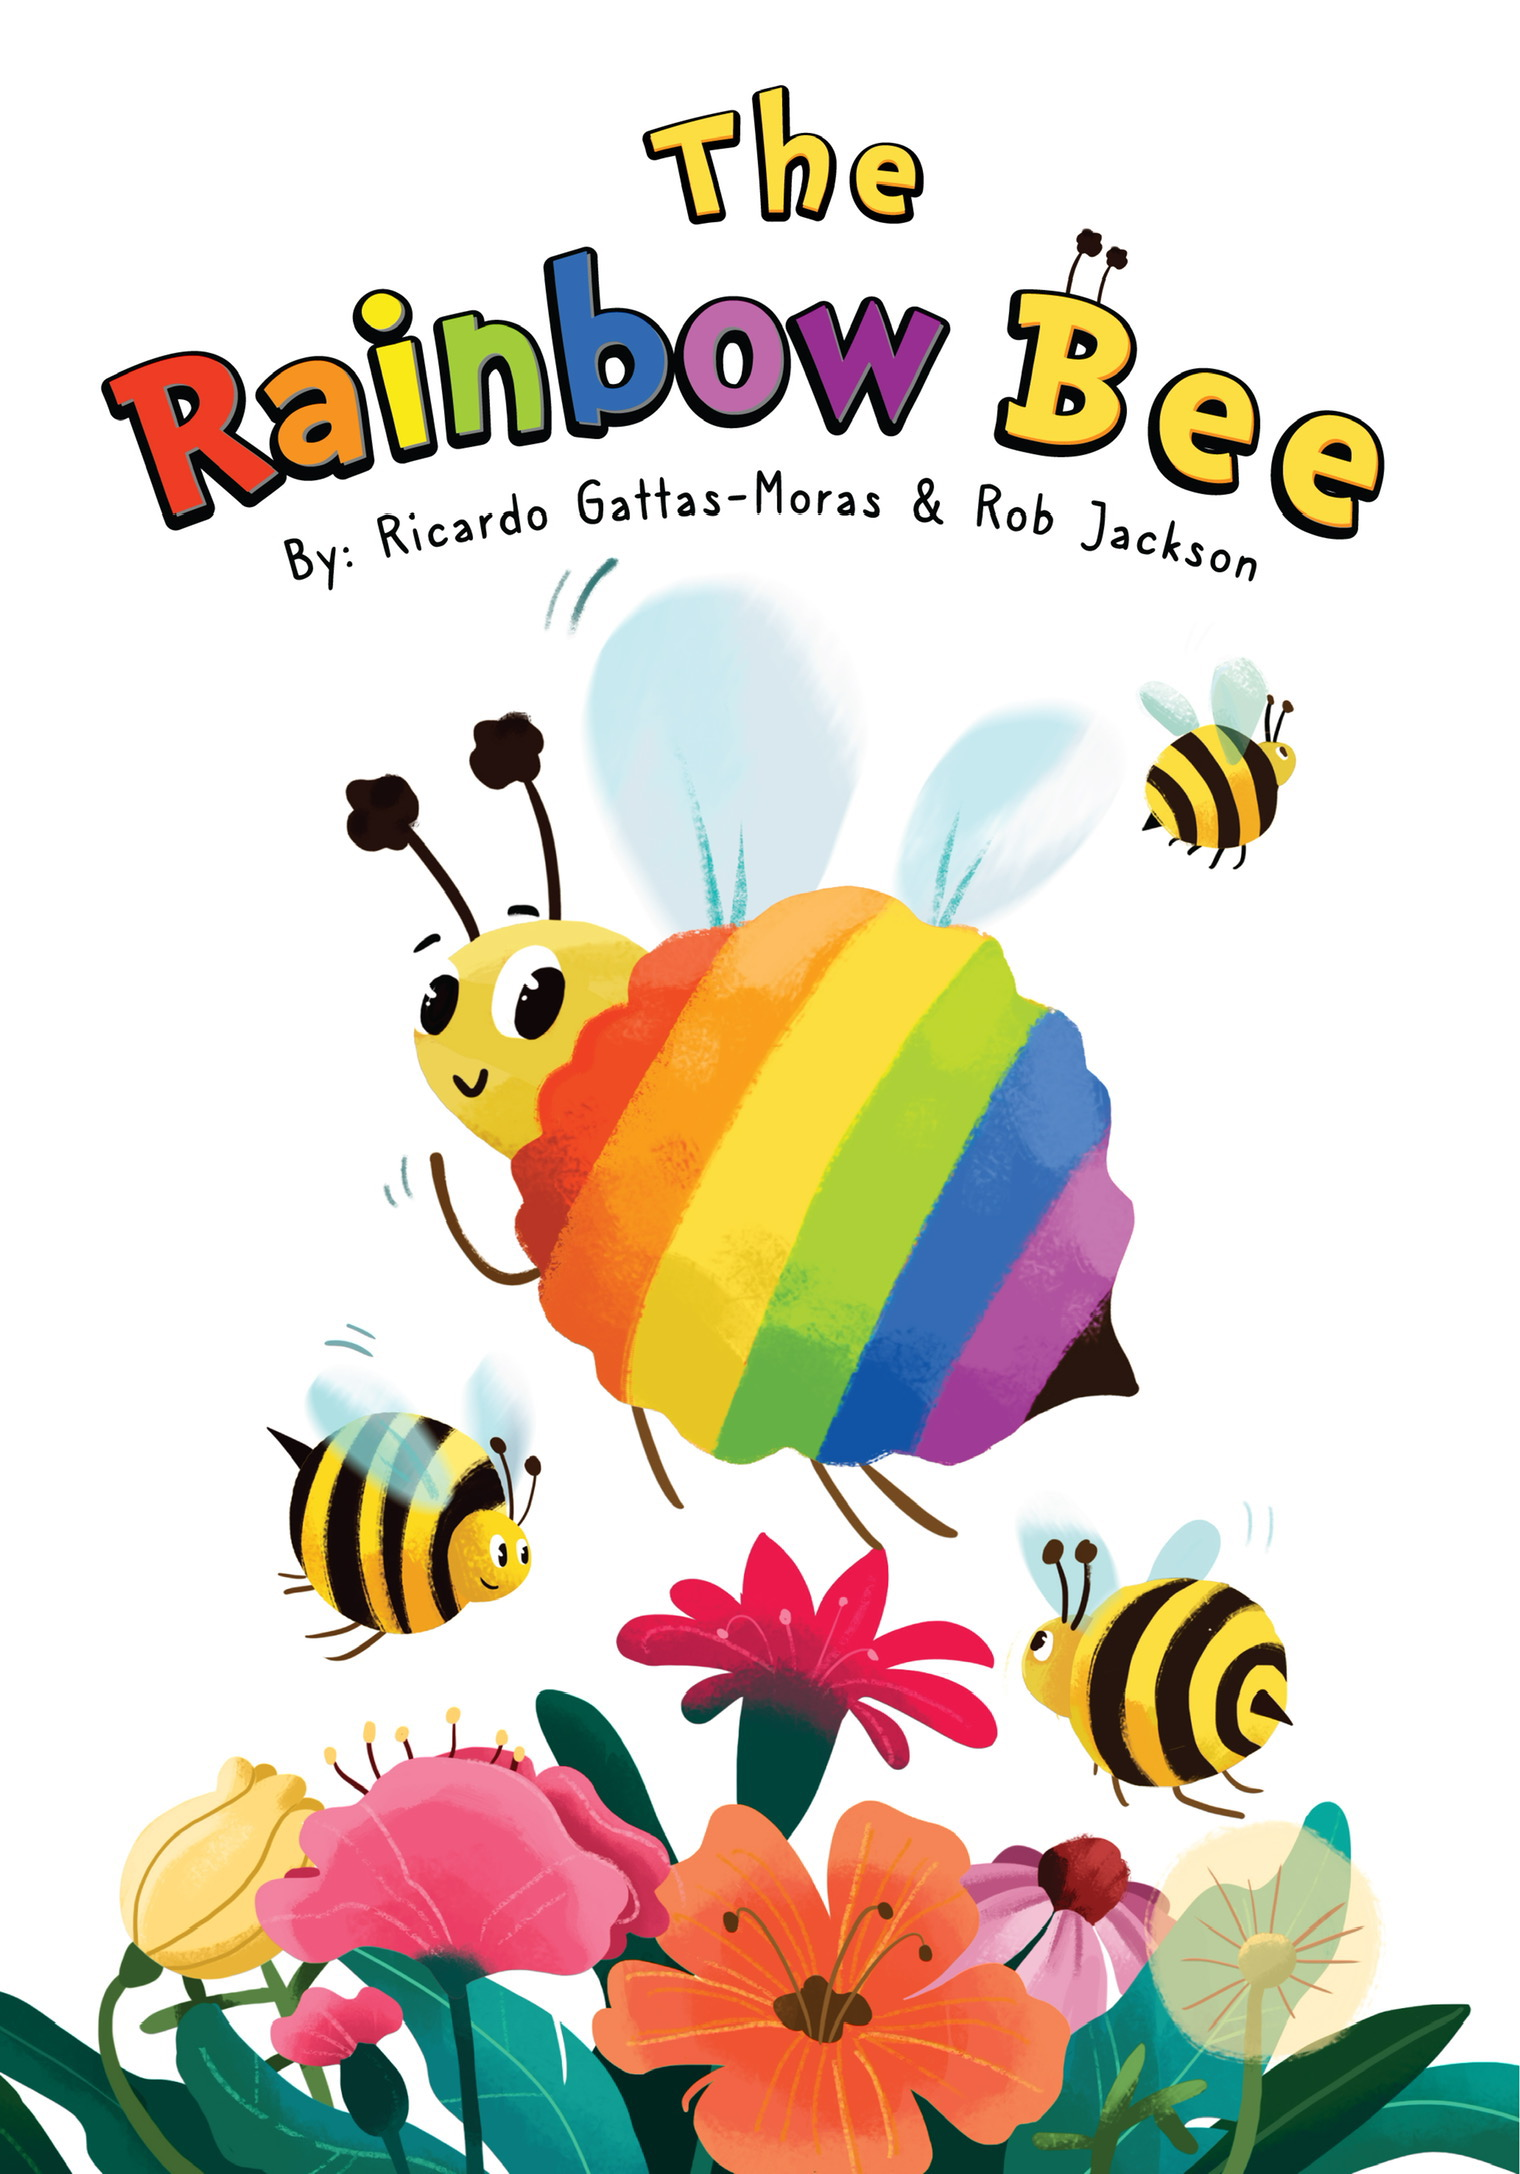 The Rainbow Bee by Ricardo Gattas-Moras and Rob Jackson